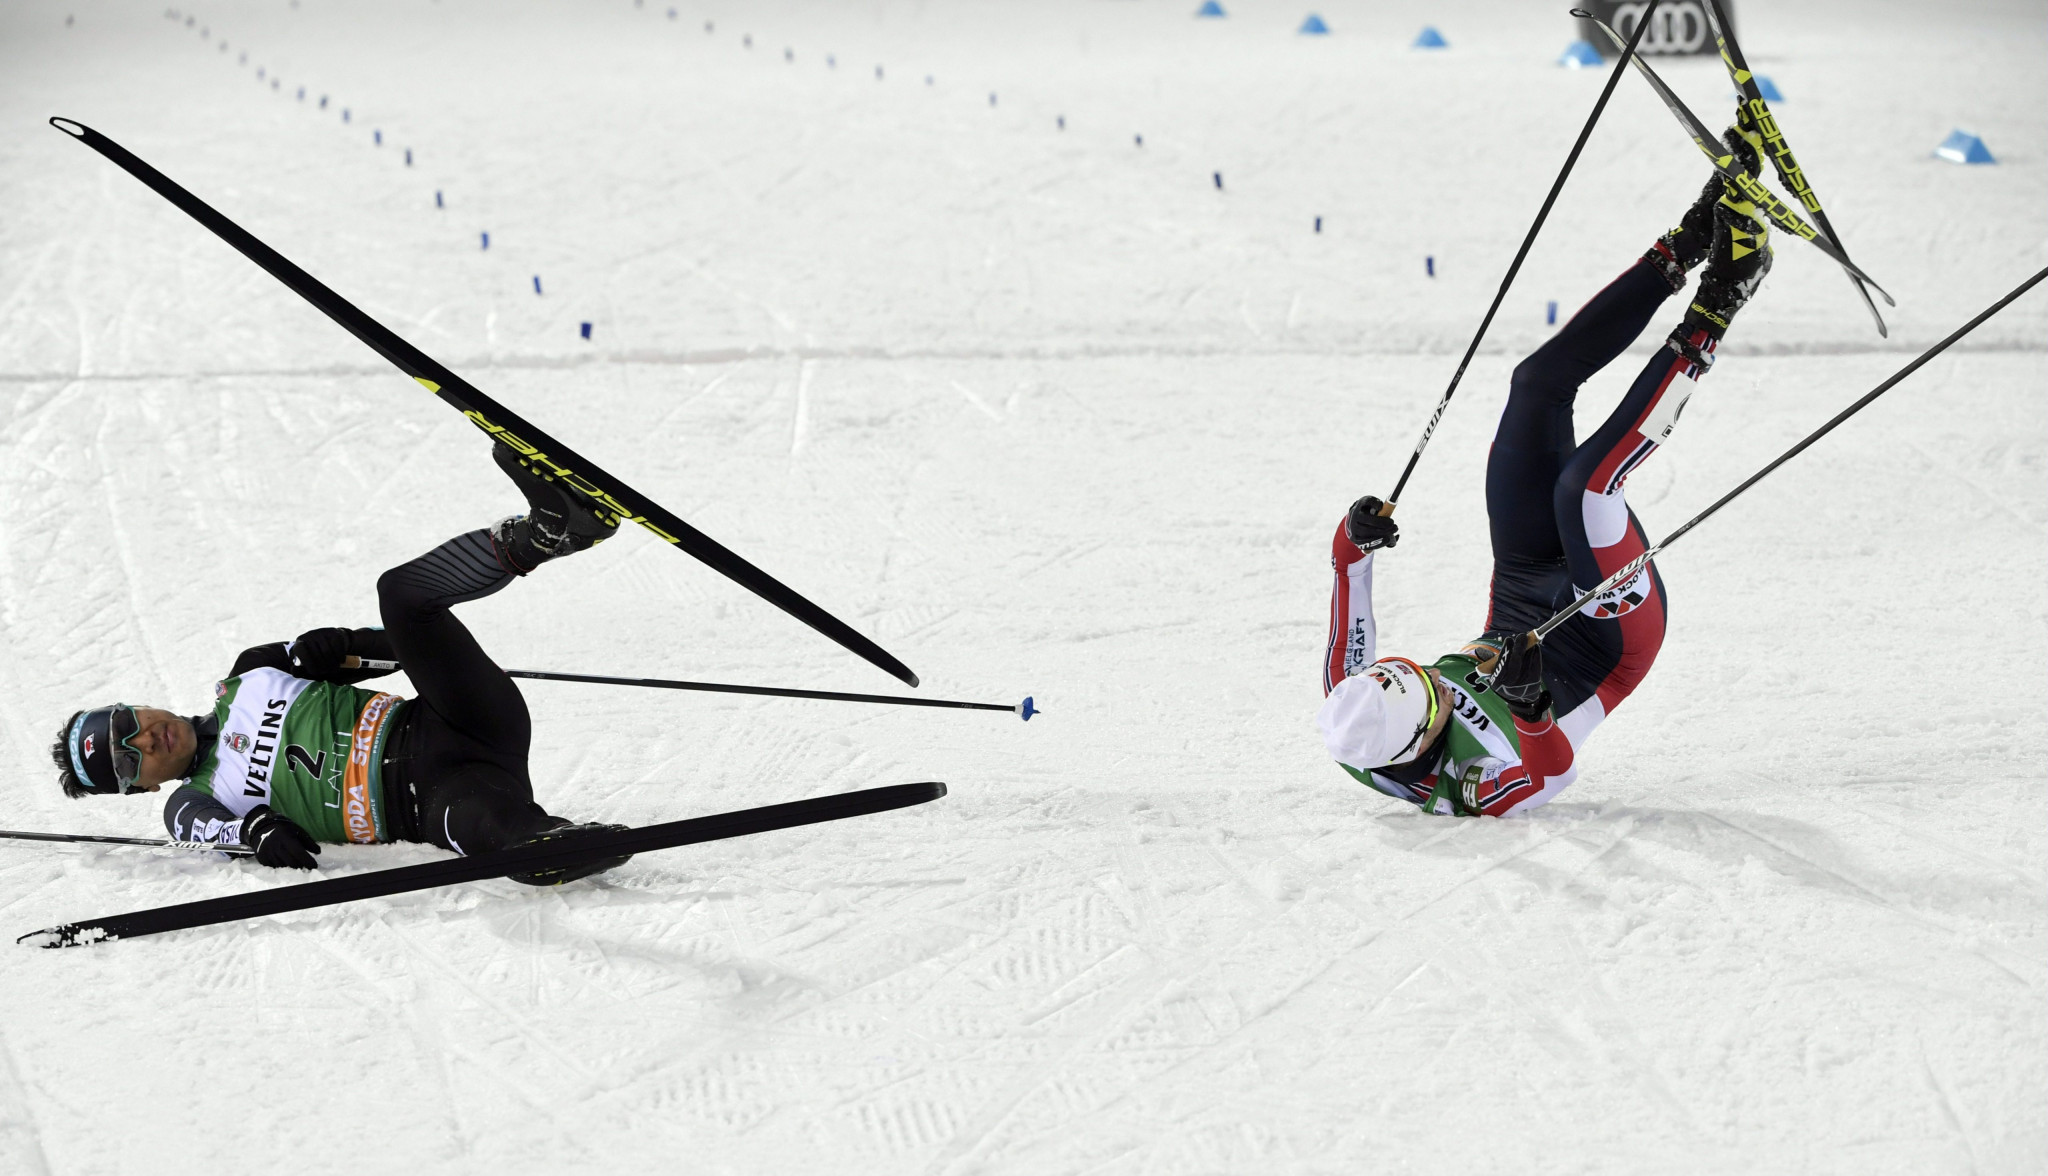 Graabak wins FIS Nordic Combined World Cup in Lahti in photo-finish